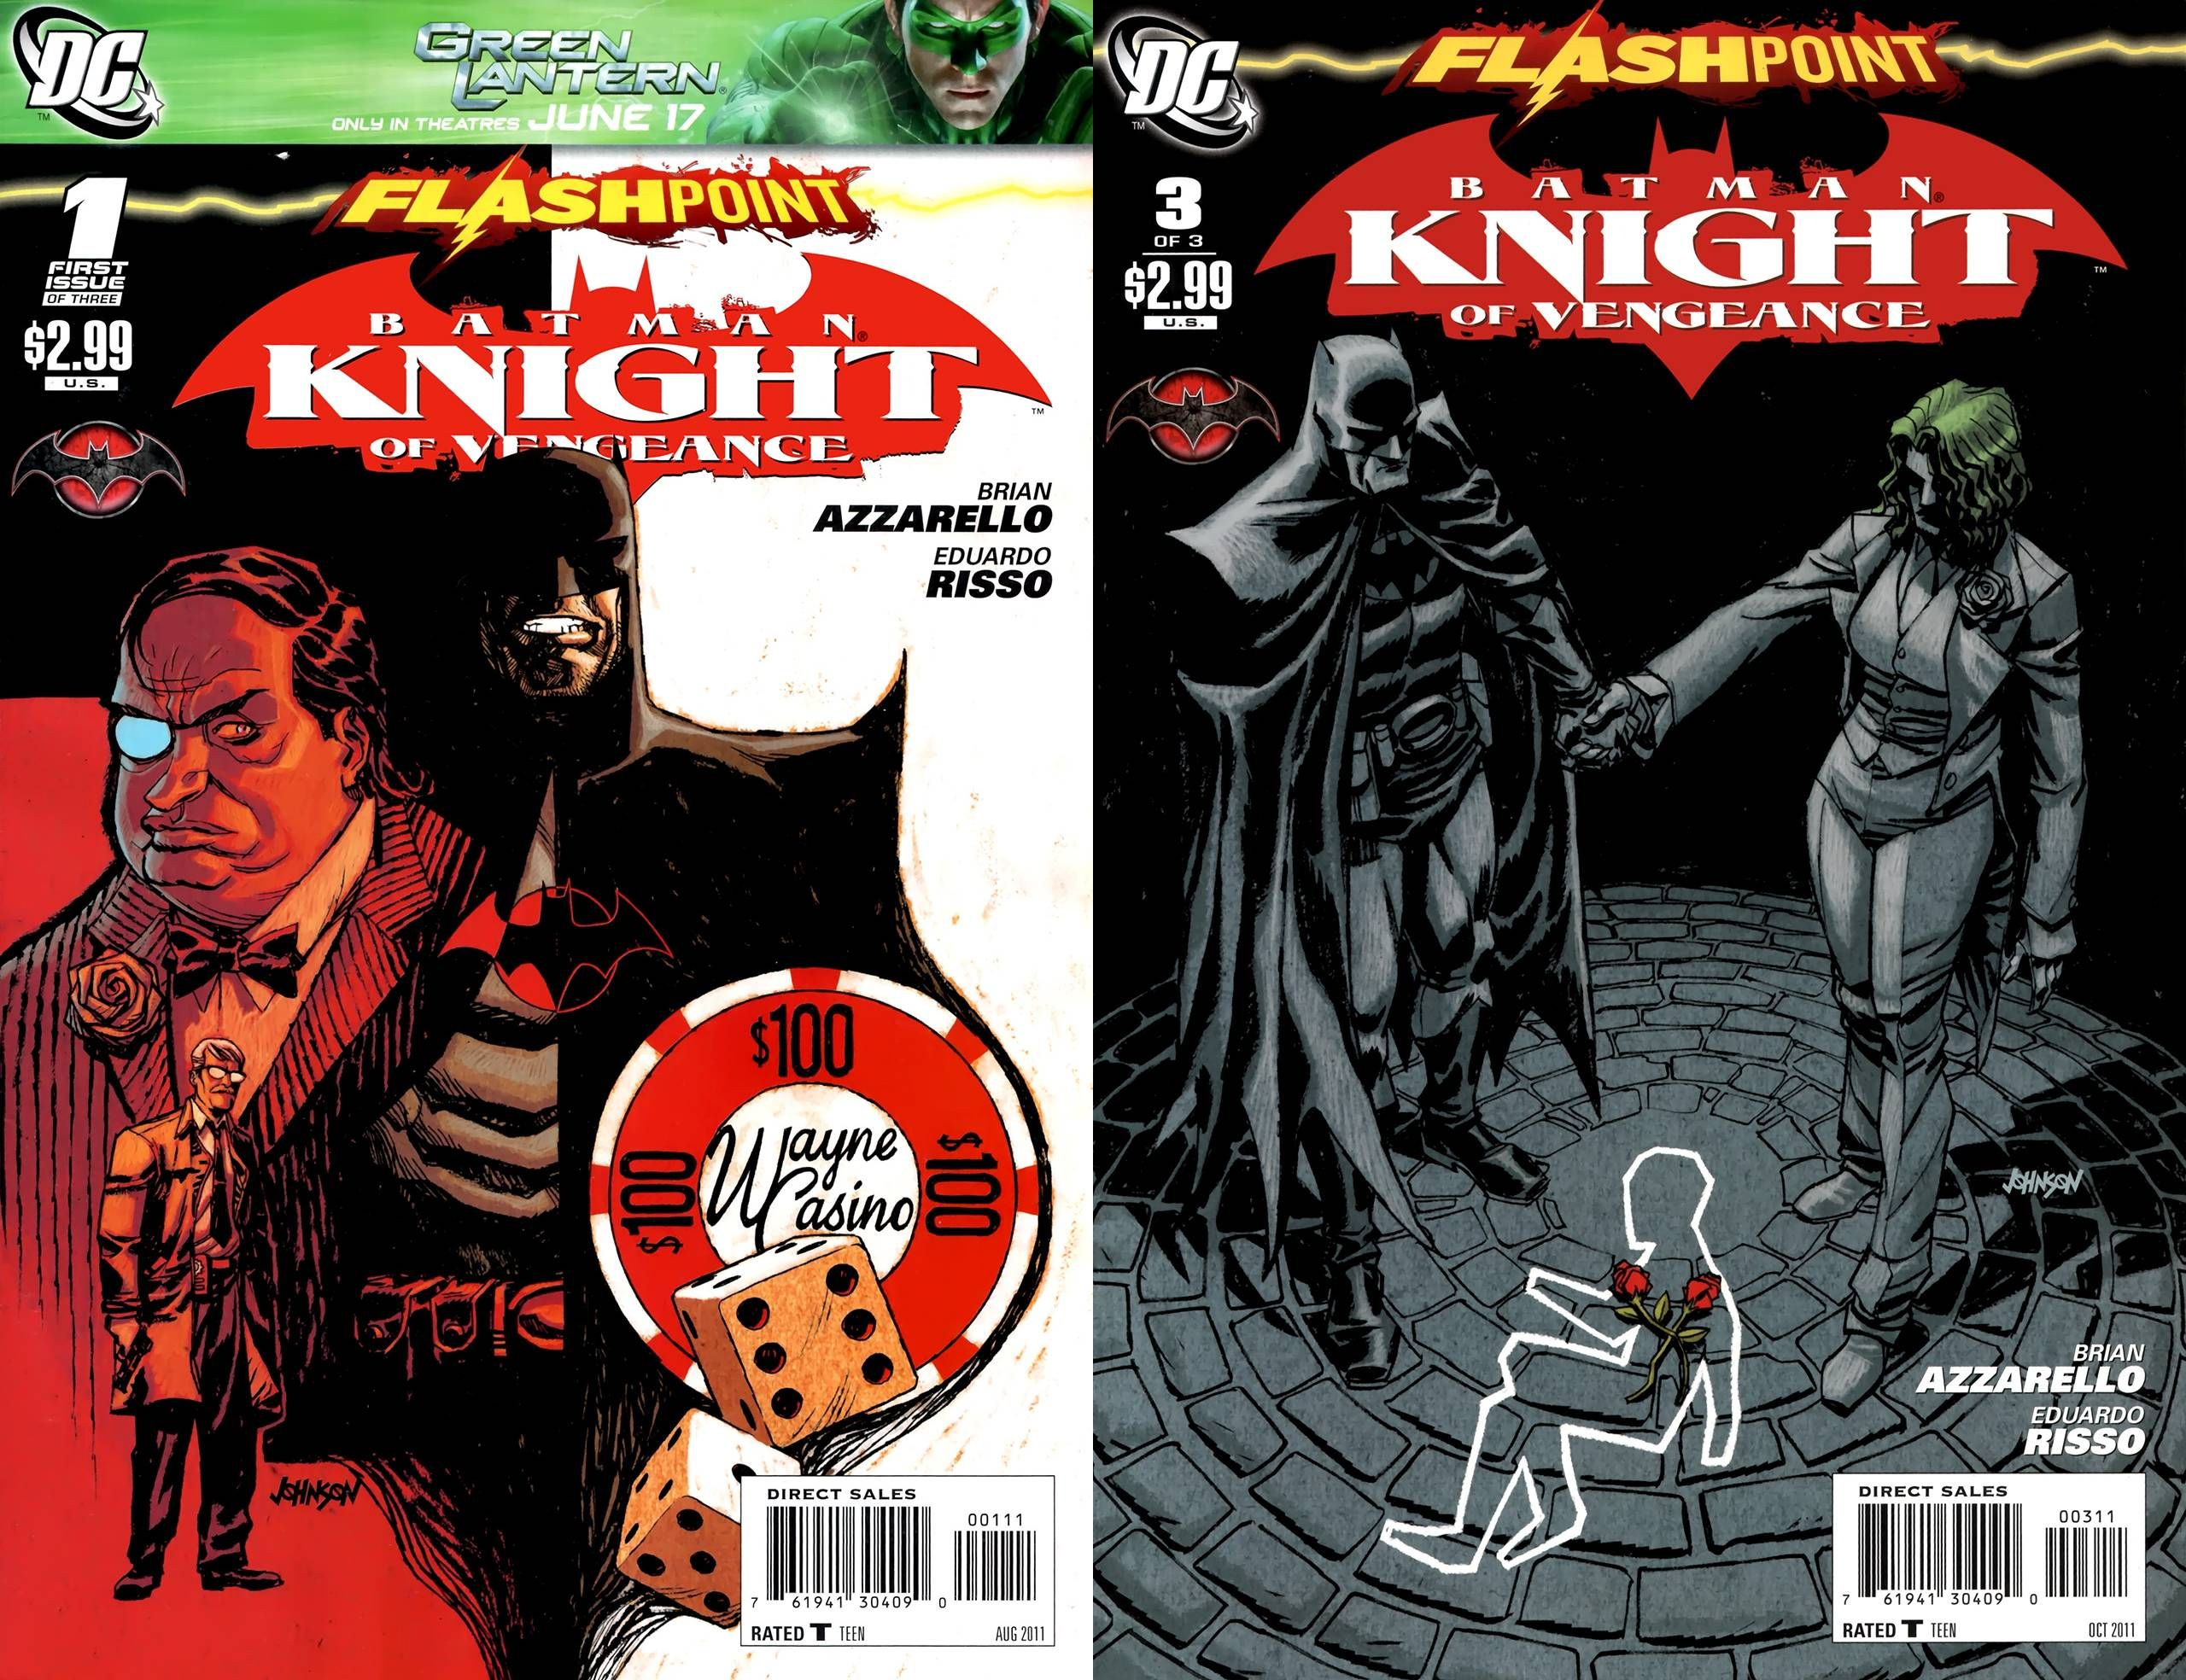 Flashpoint - Batman Knight of Vengeance 1-3 (2011) Ccomplete English | CBR | 3 Issues | 39.28 MB